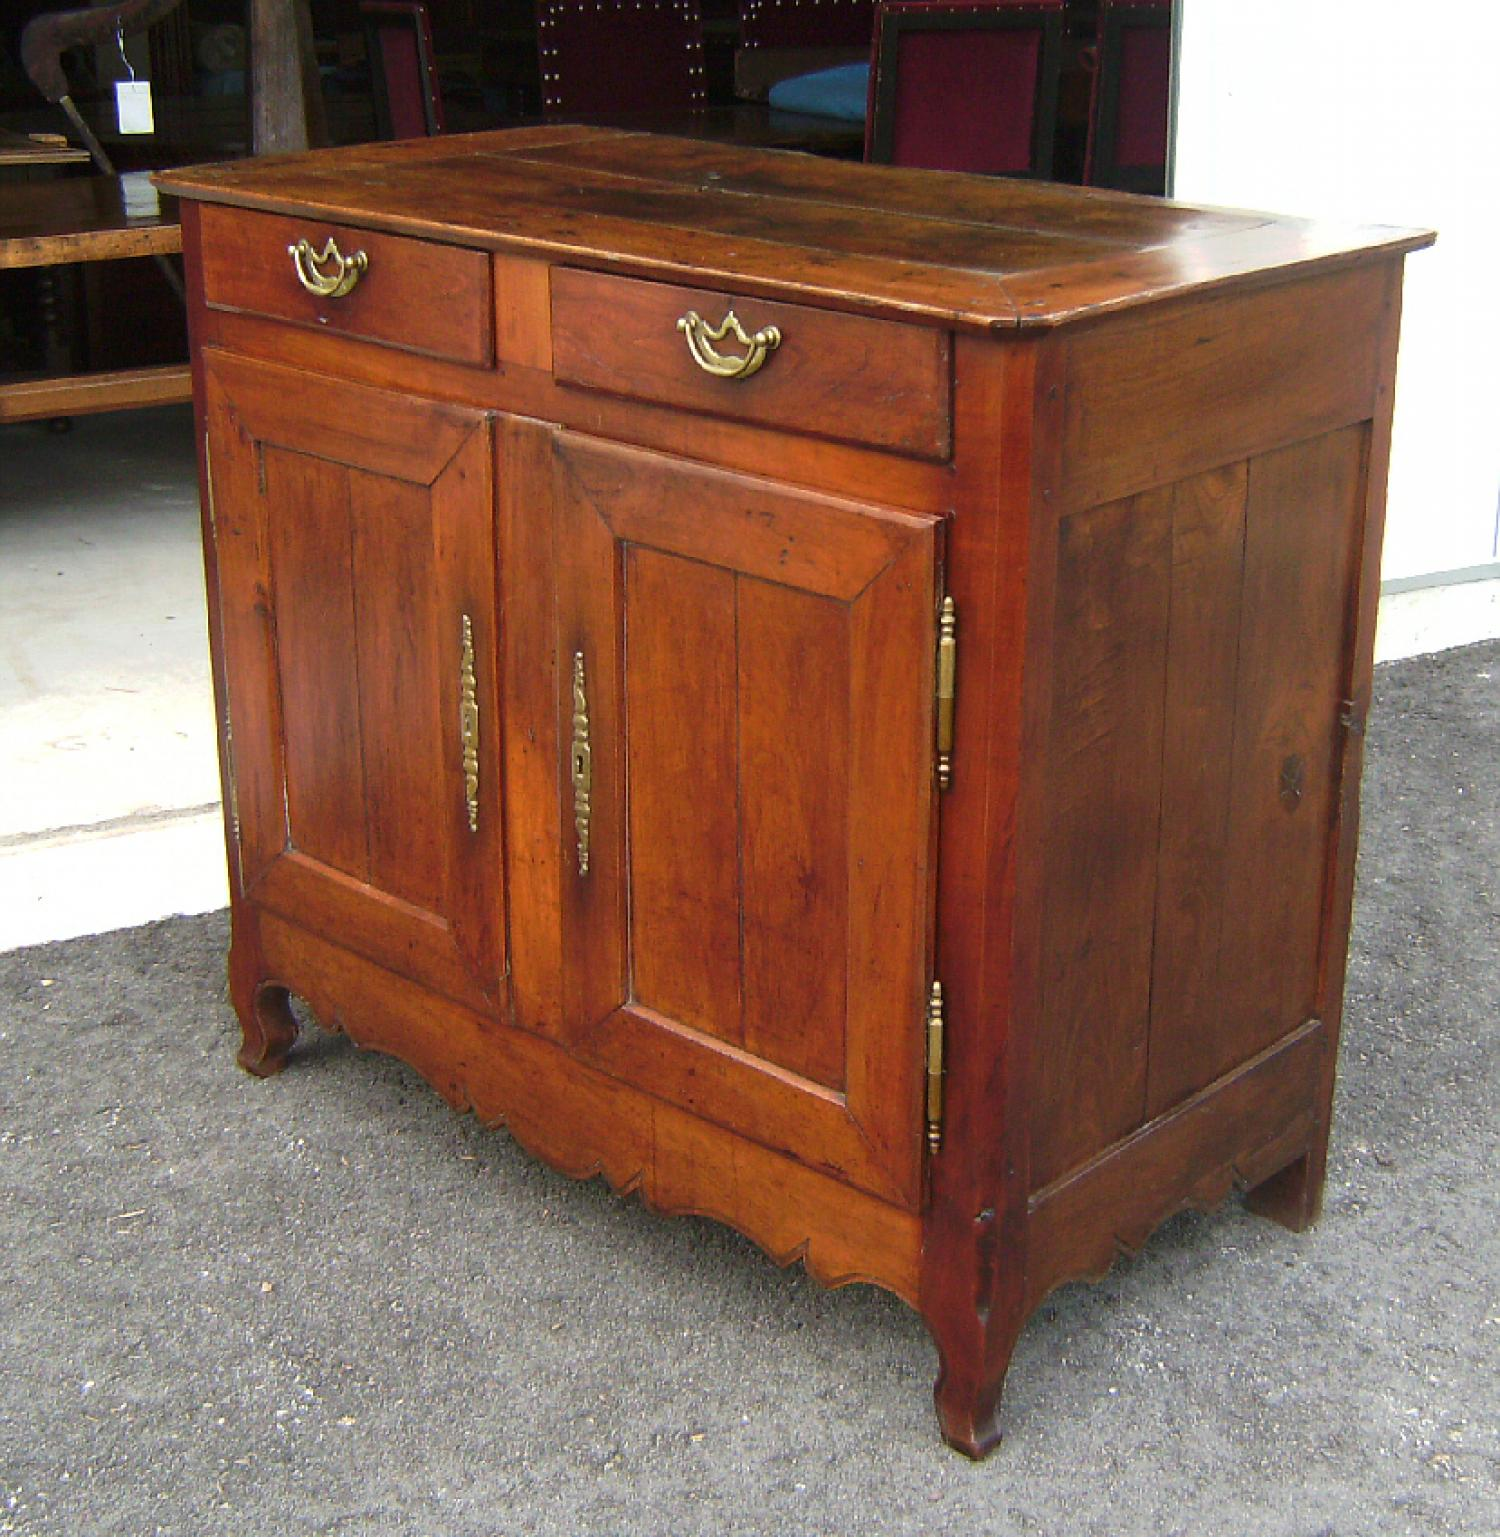 Country French kitchen or dining room sideboard c 1780